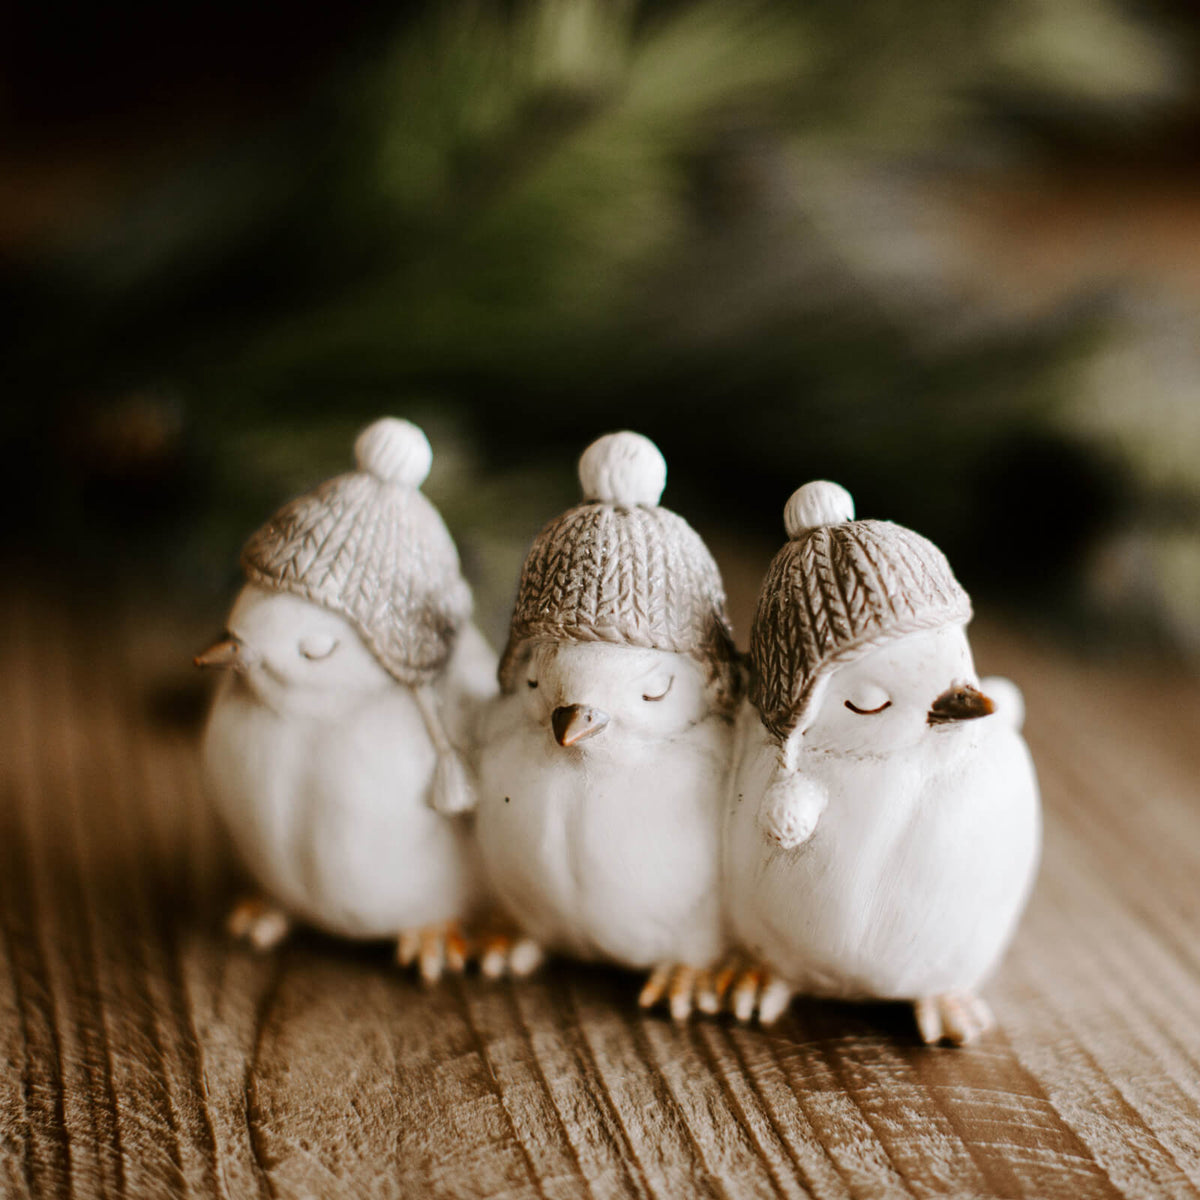 A figurine featuring 3 little white birds in winter stocking caps, with eyes closed resting on a tabletop